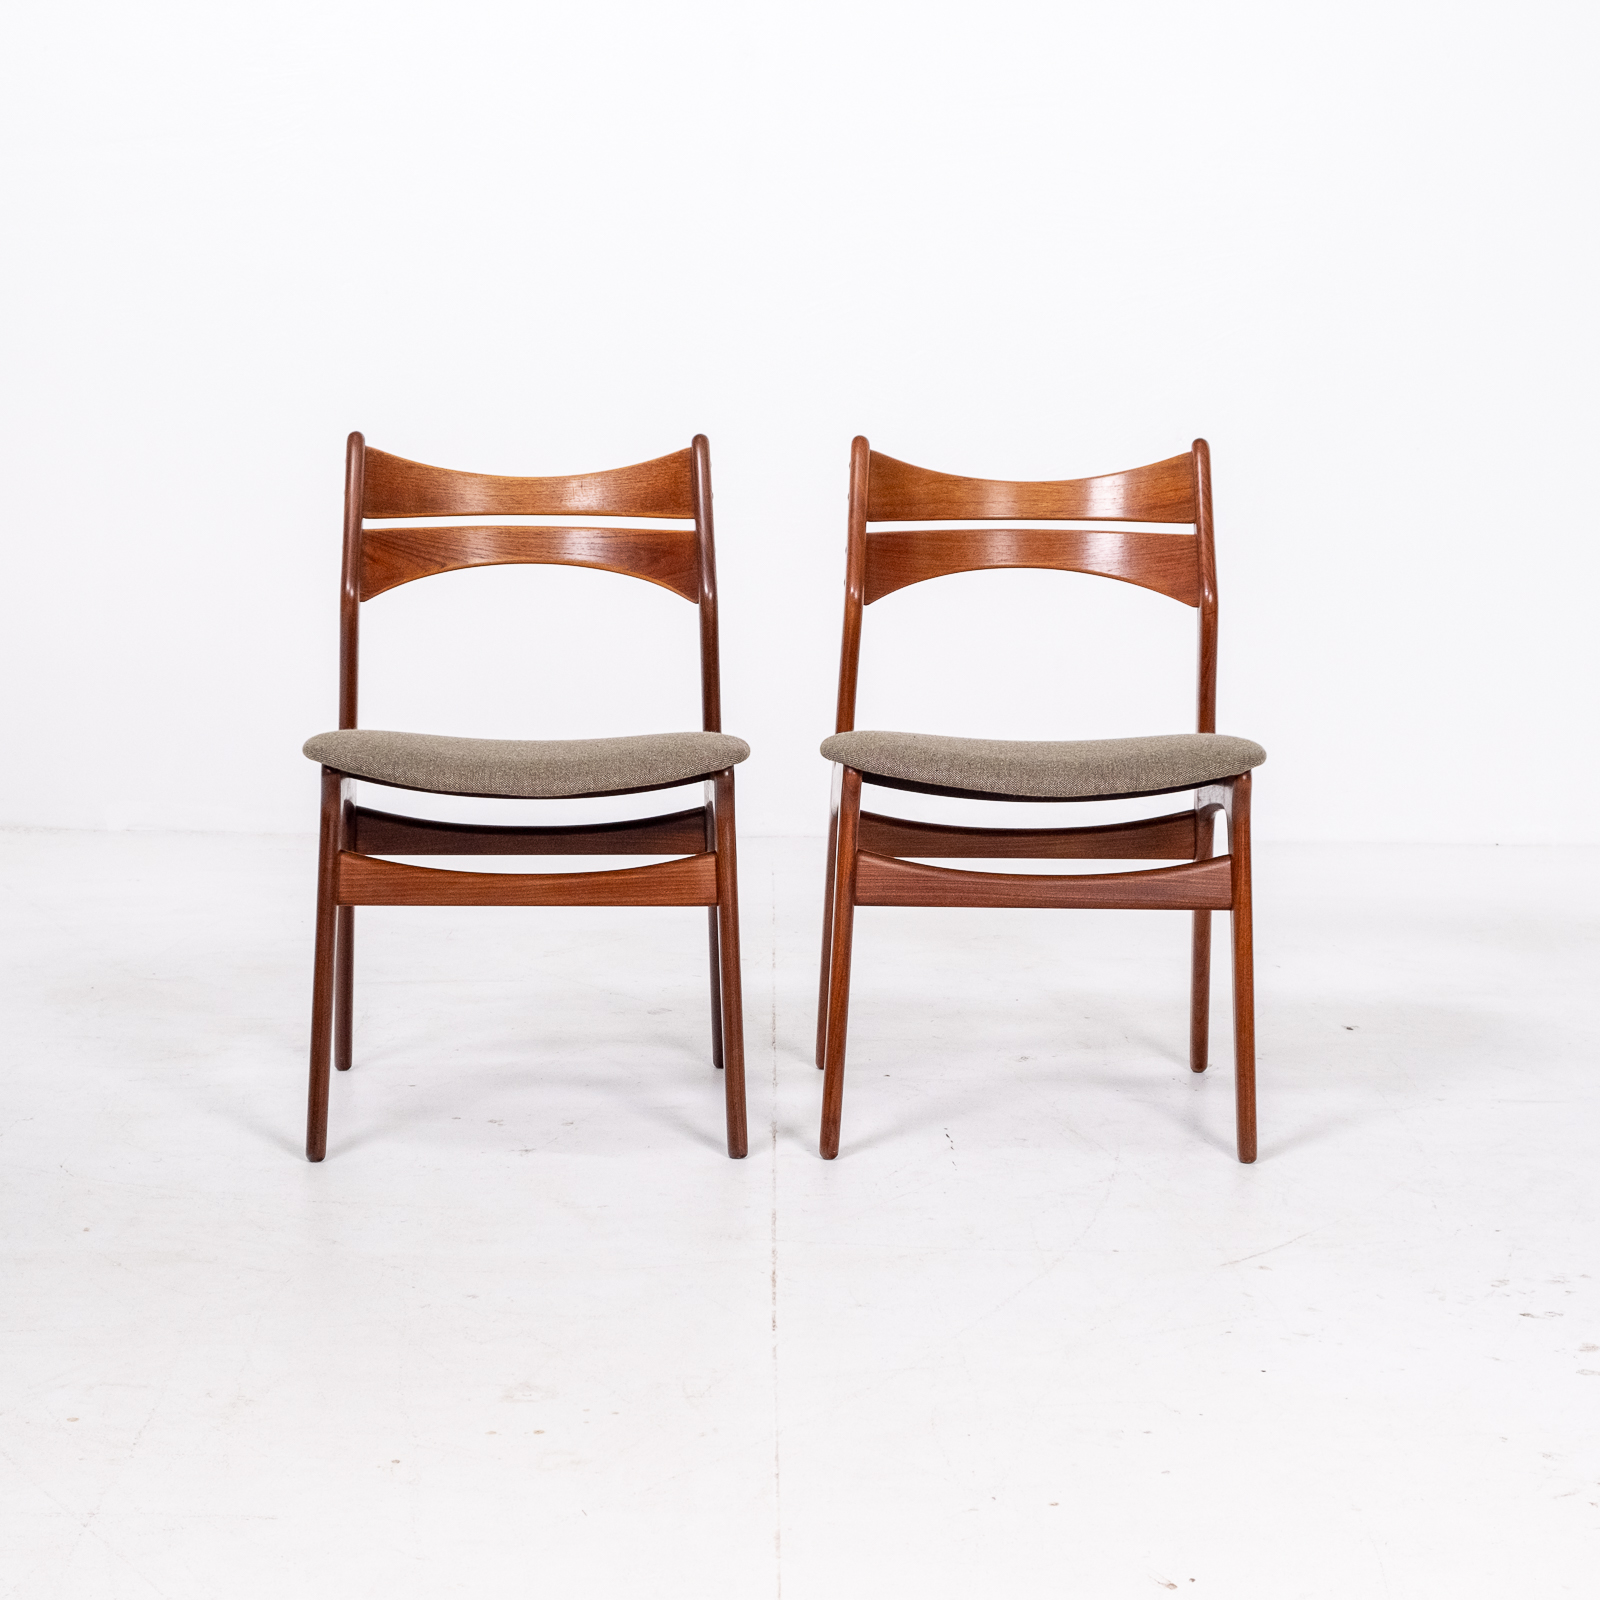 Set Of 2 Model 130 Dining Chairs By Erik Buch For Christian Christensens Mobelfabrik In New Instyle Upholstery And Teak, 1960s, Denmark 03